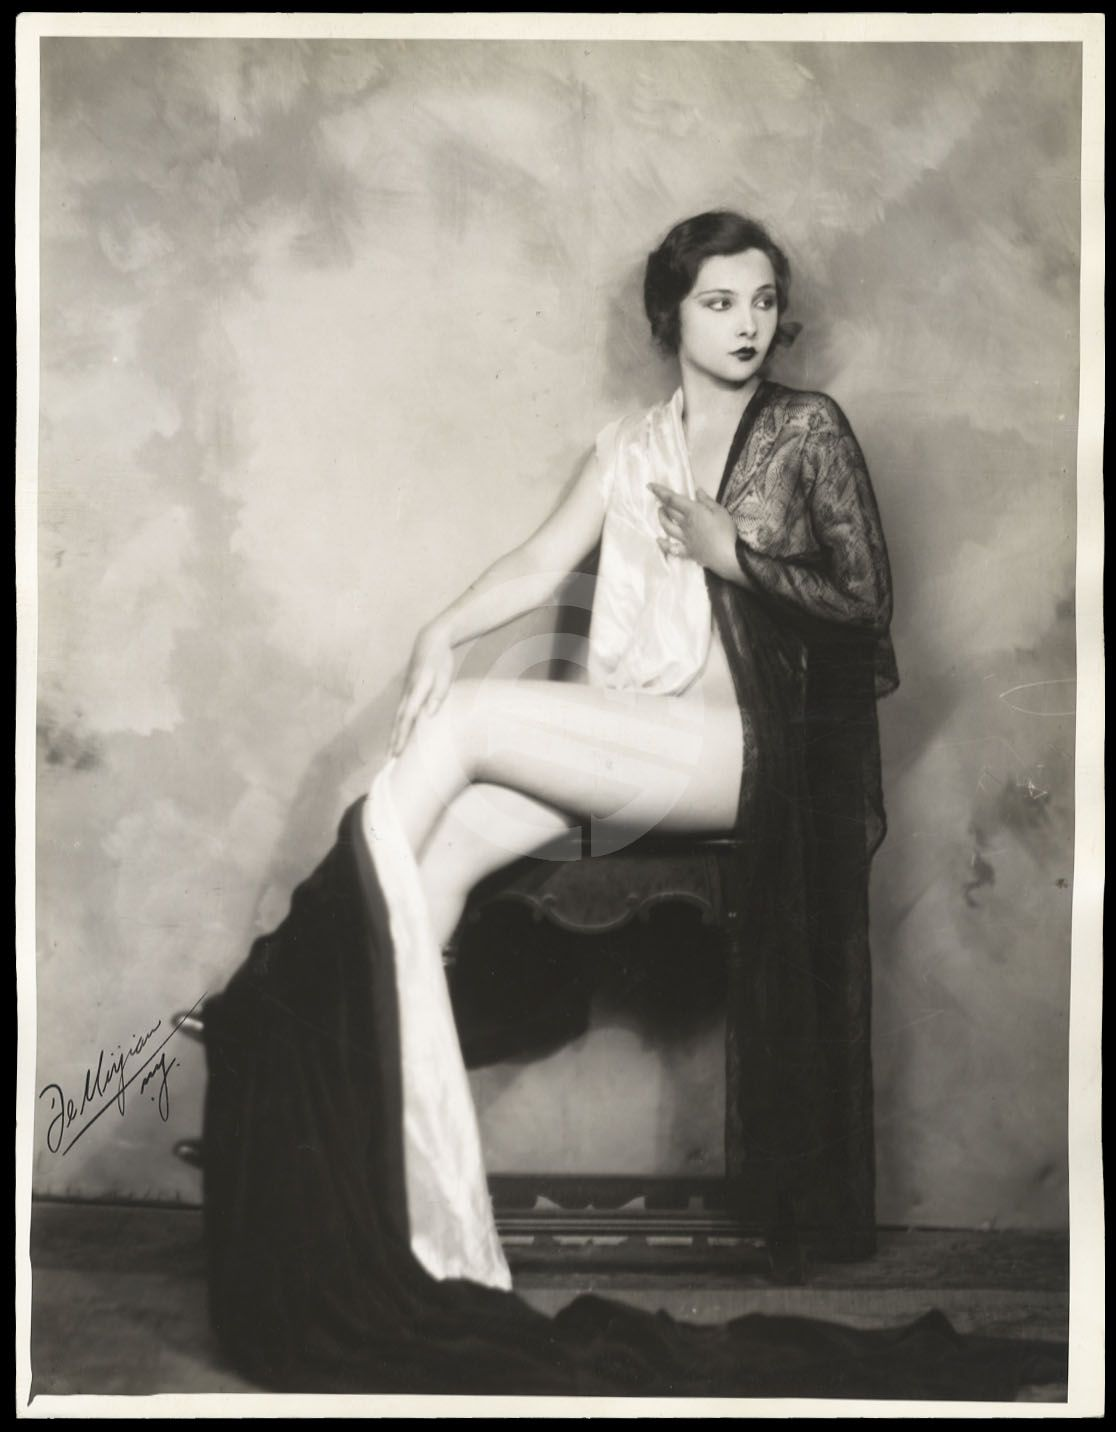 Marion Brash,Marguerite MacIntyre Erotic picture Ronald Leigh-Hunt (1920?005),Lana Del Rey